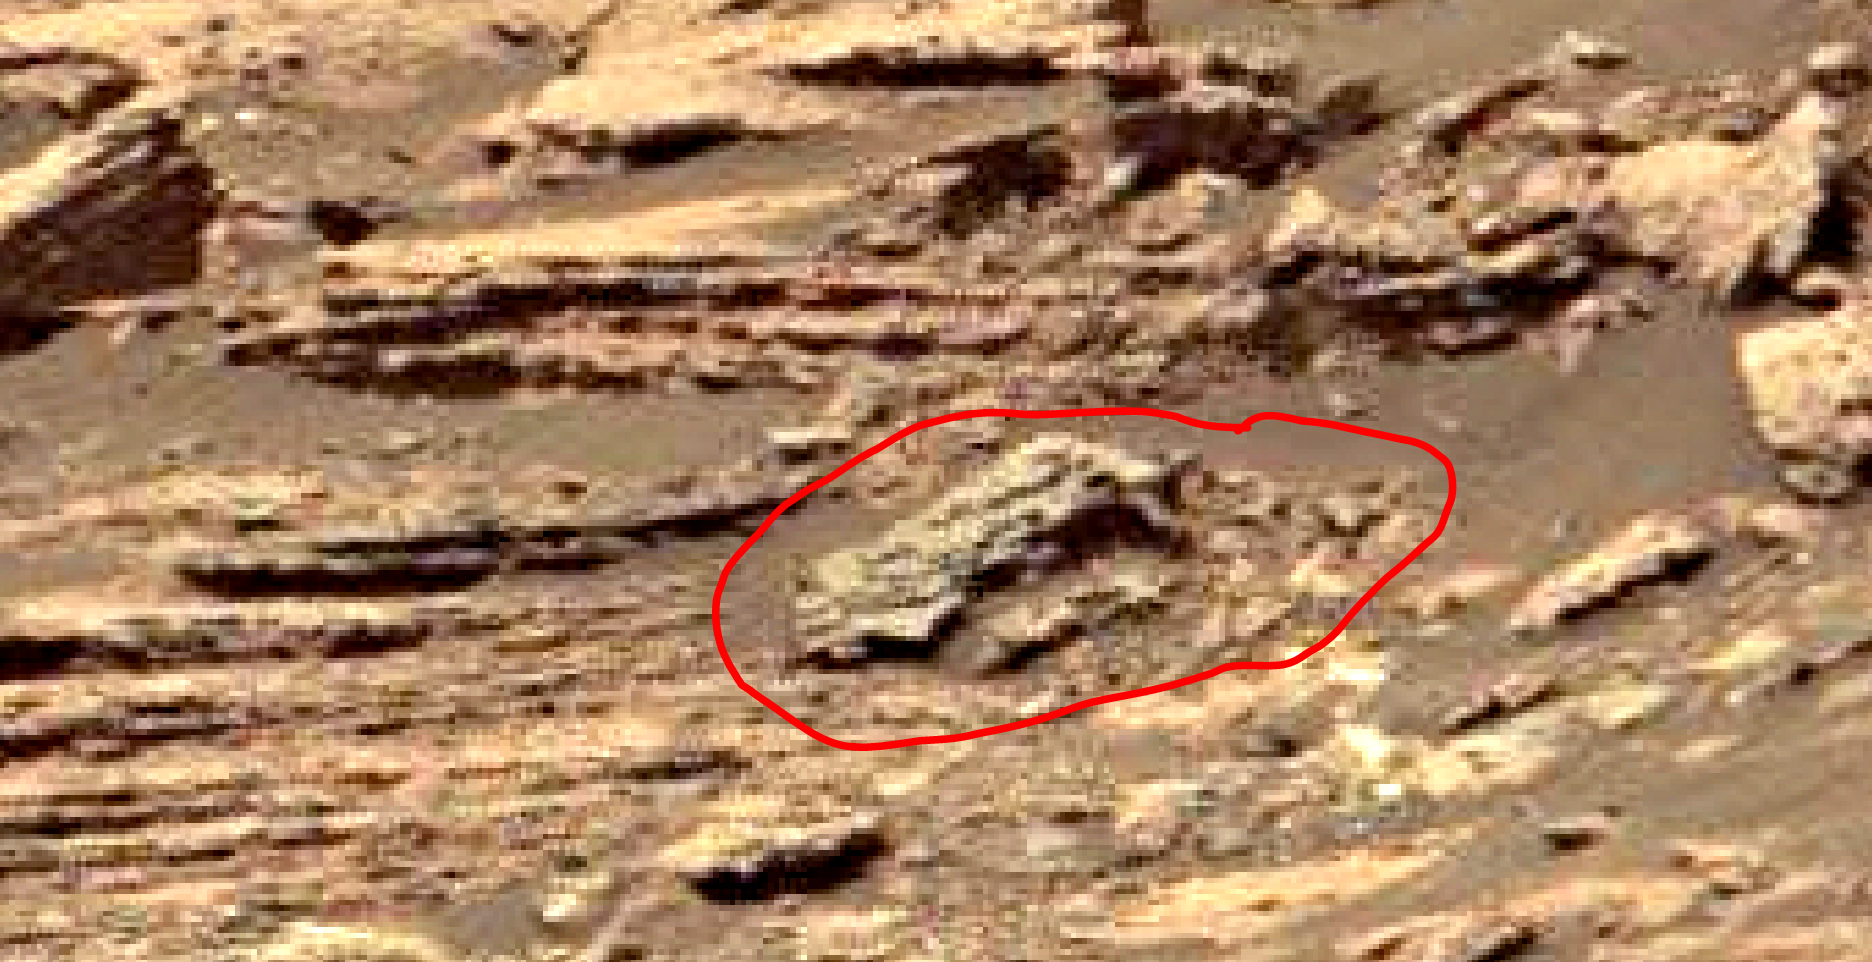 mars-sol-1493-anomaly-artifacts-3a-was-life-on-mars